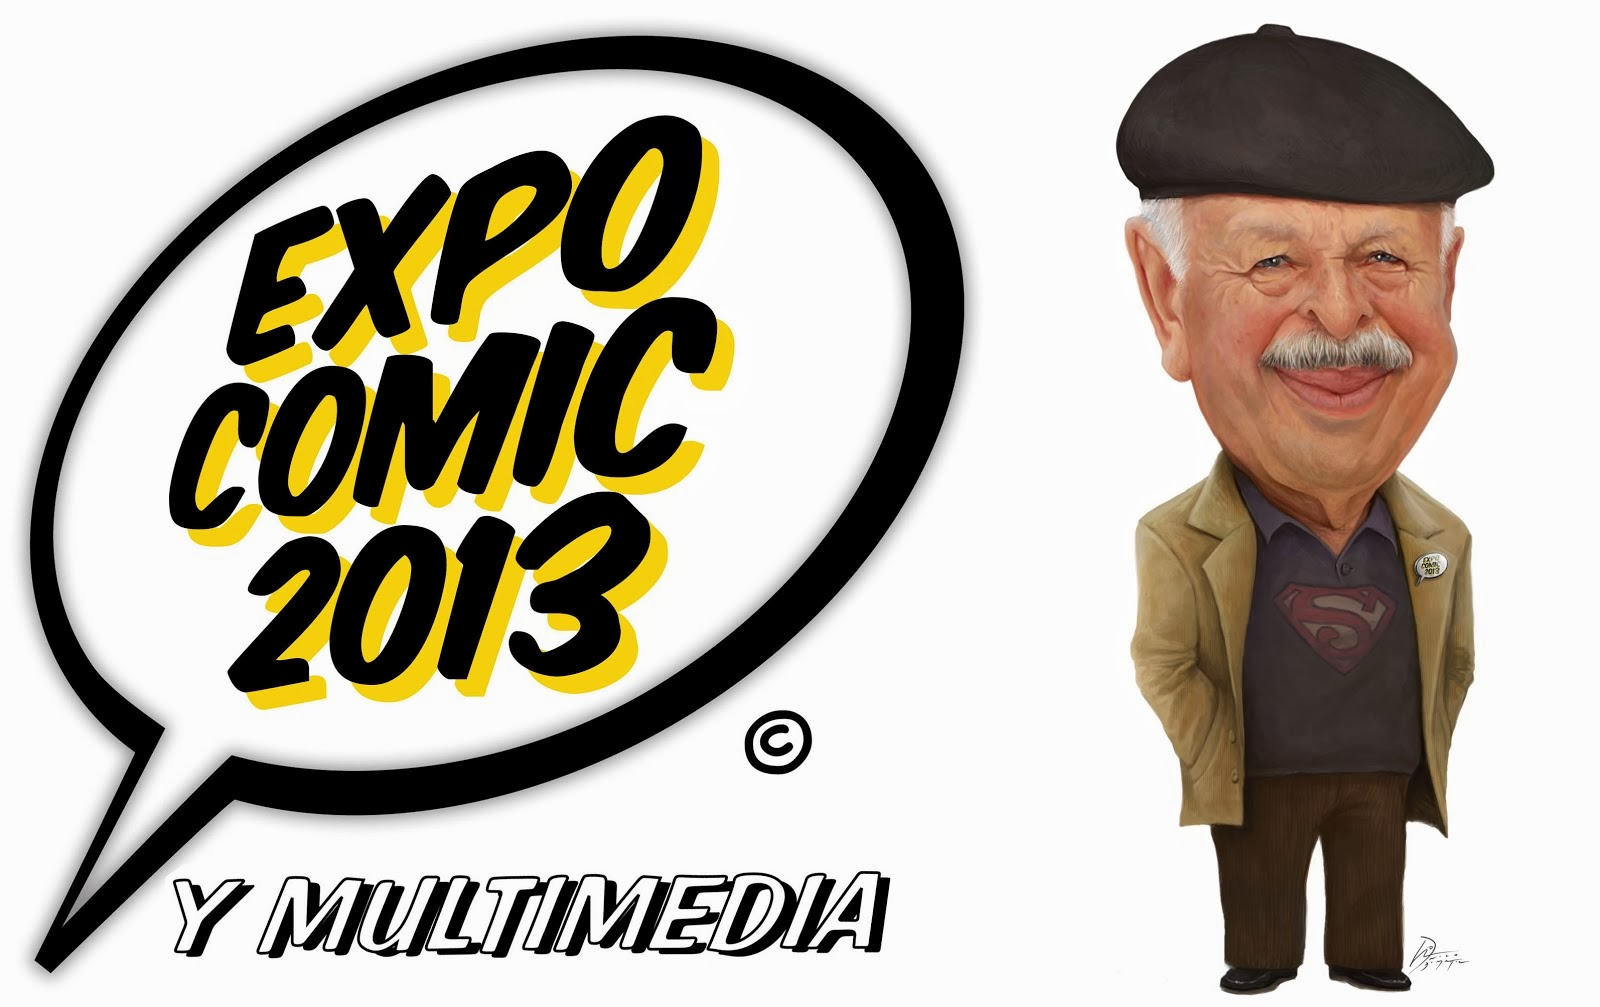 Expo- Comic 2013 y Multimedia